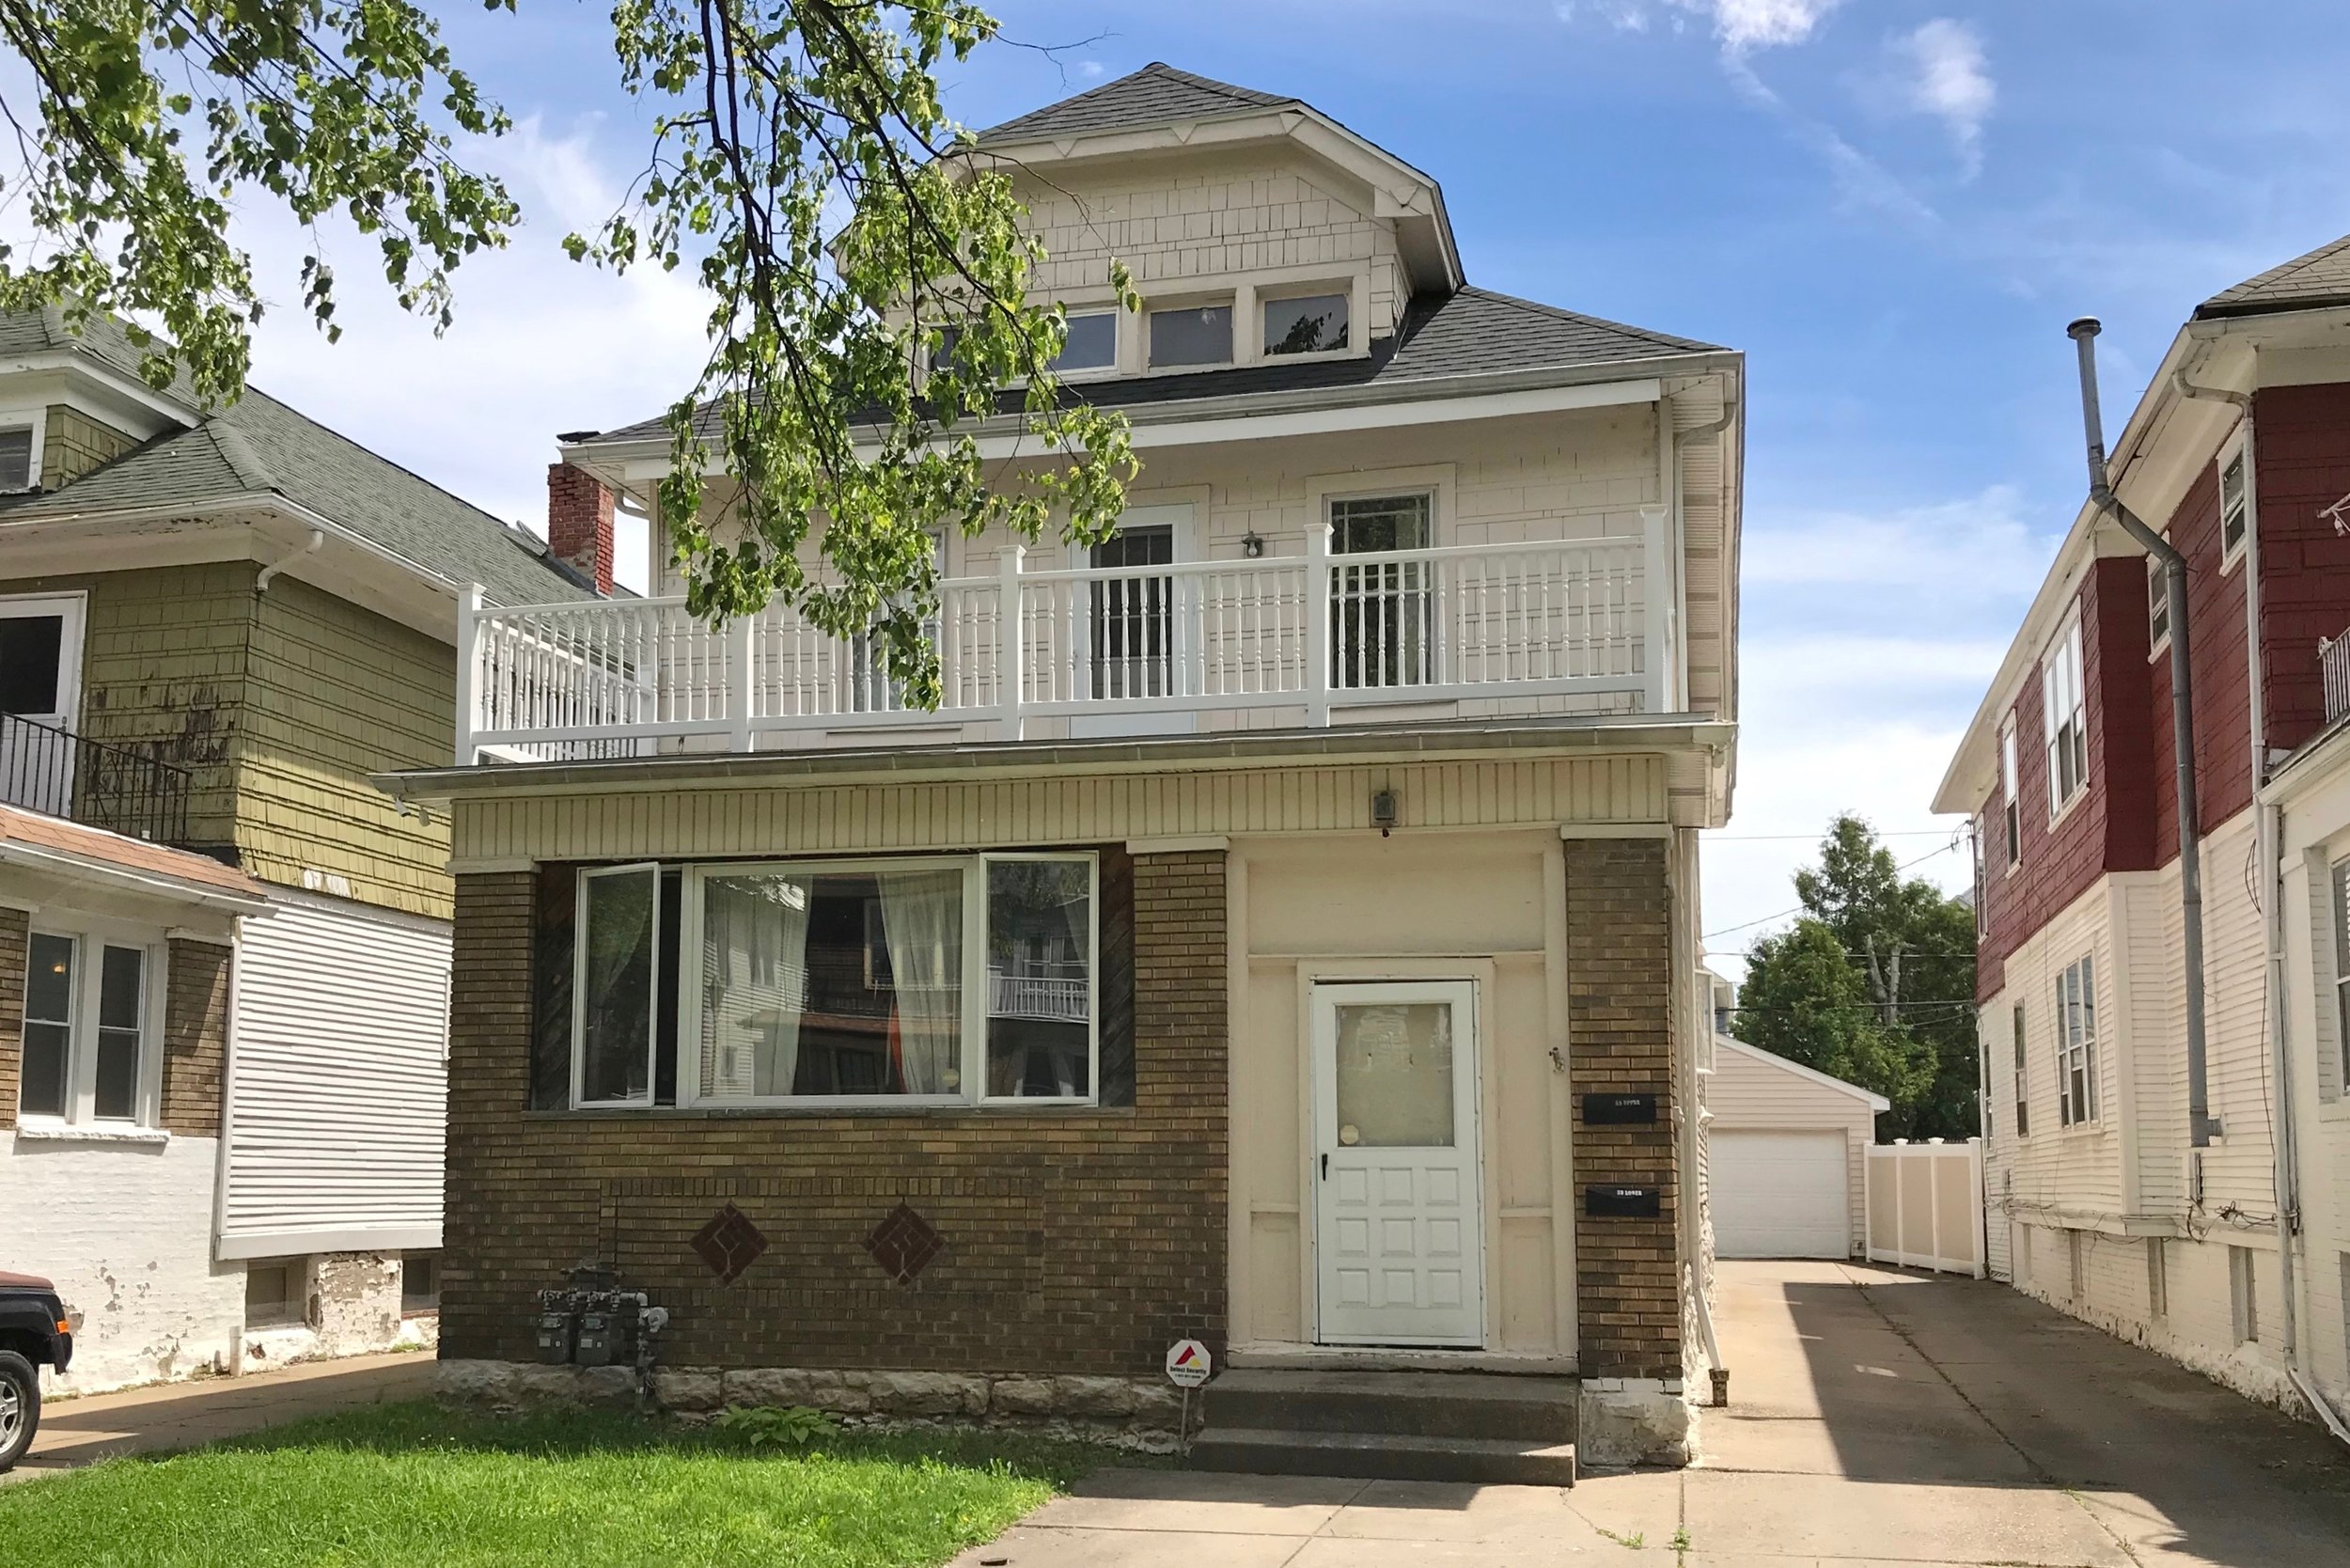 SOLD: 59 Traymore St, Buffalo | $199,900